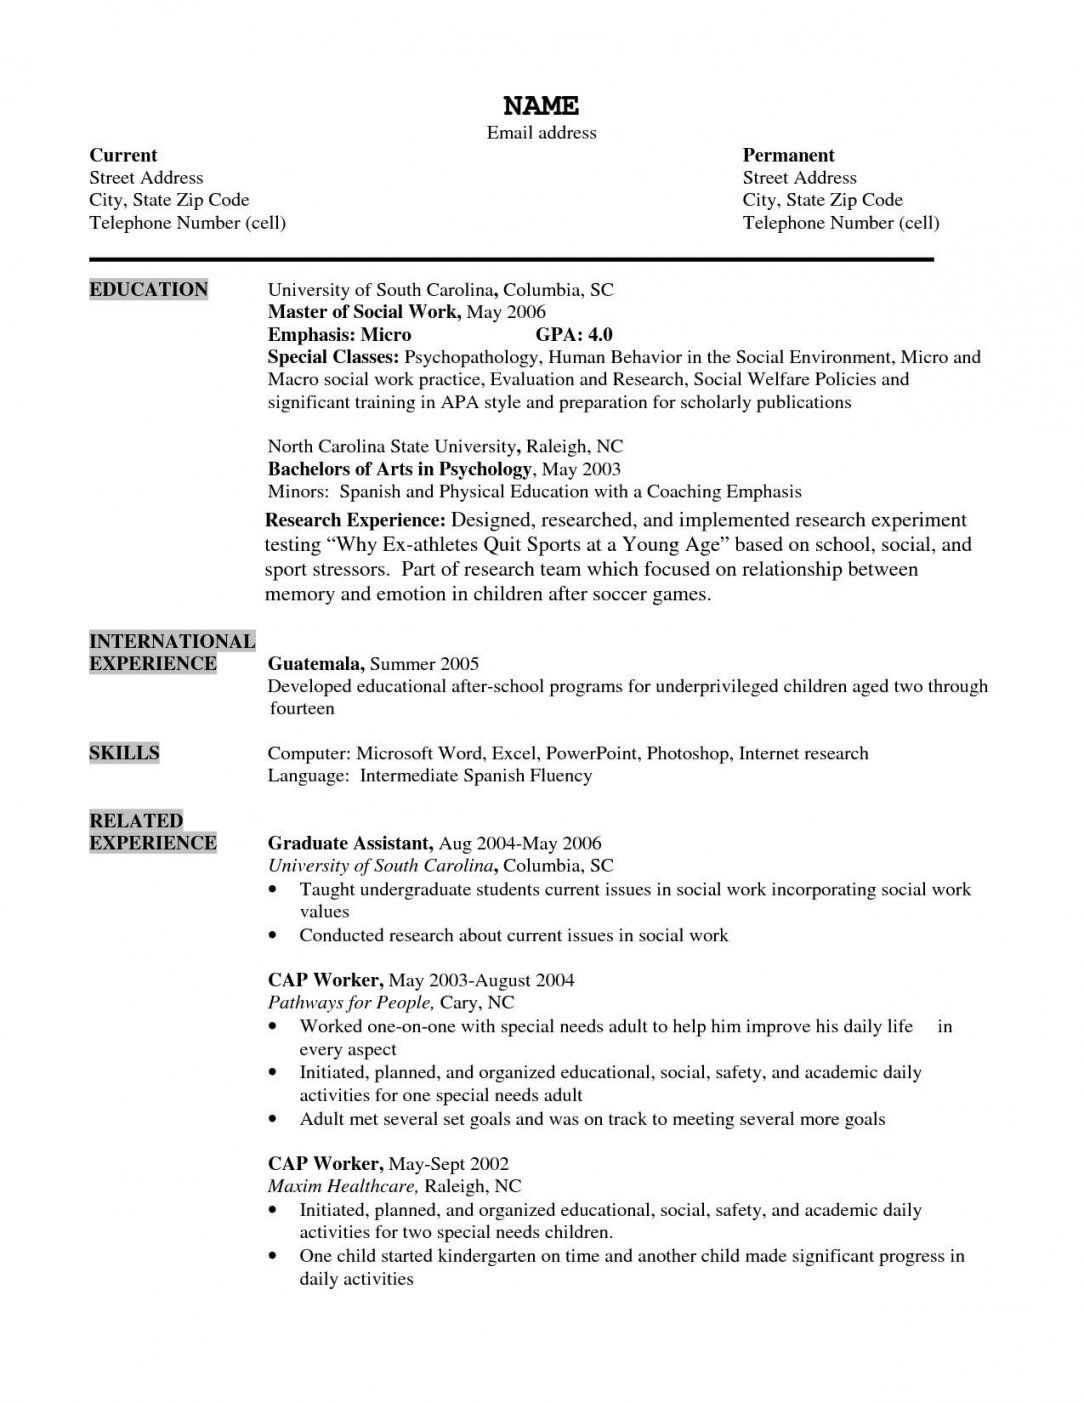 resume examples for older workers cover letter job sample seekers of operations executive Resume Sample Resume For Older Job Seekers